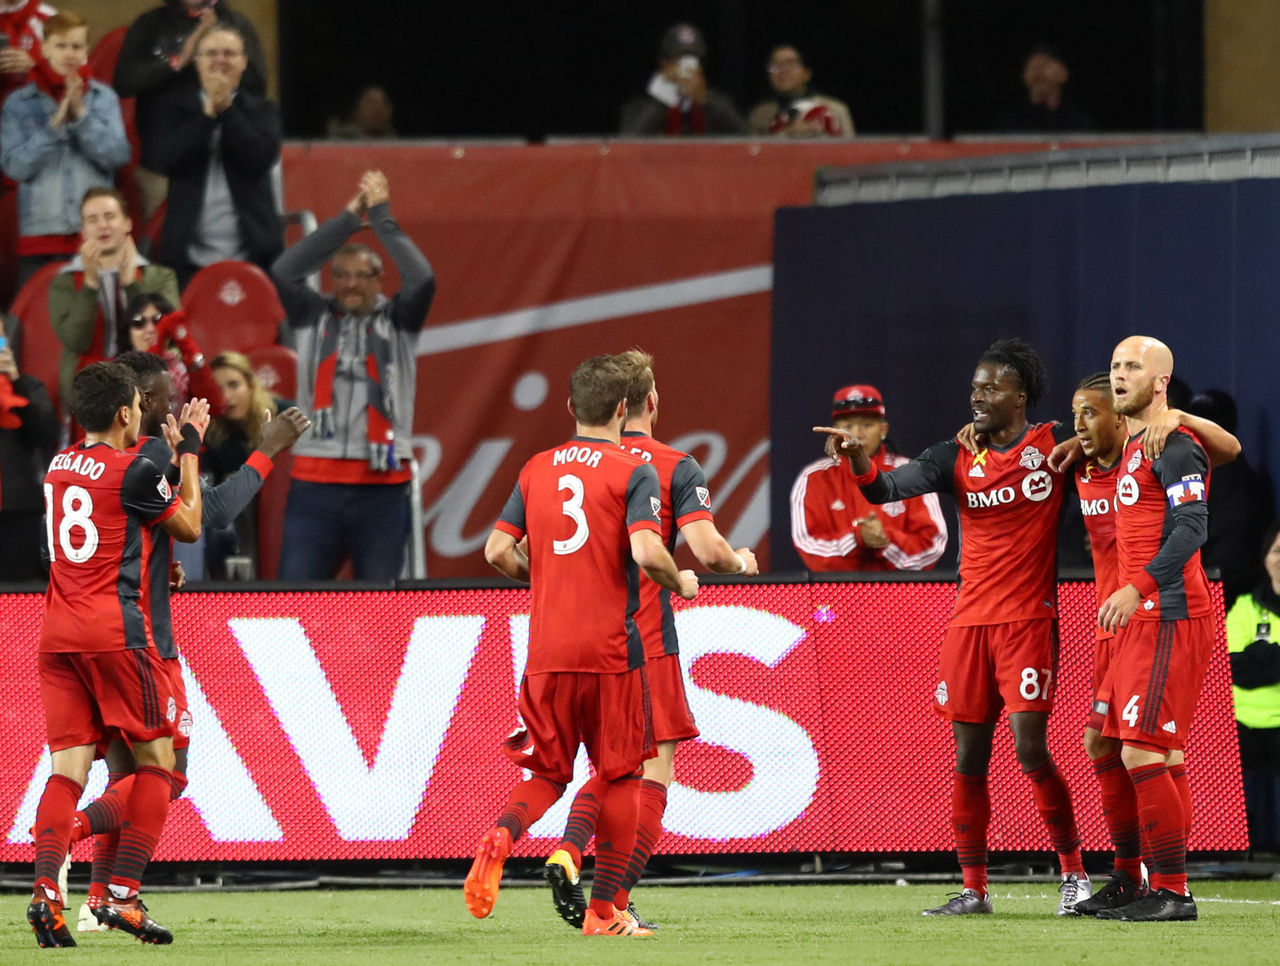 Cropped 2017 10 01t002236z 436465139 nocid rtrmadp 3 mls new york red bulls at toronto fc